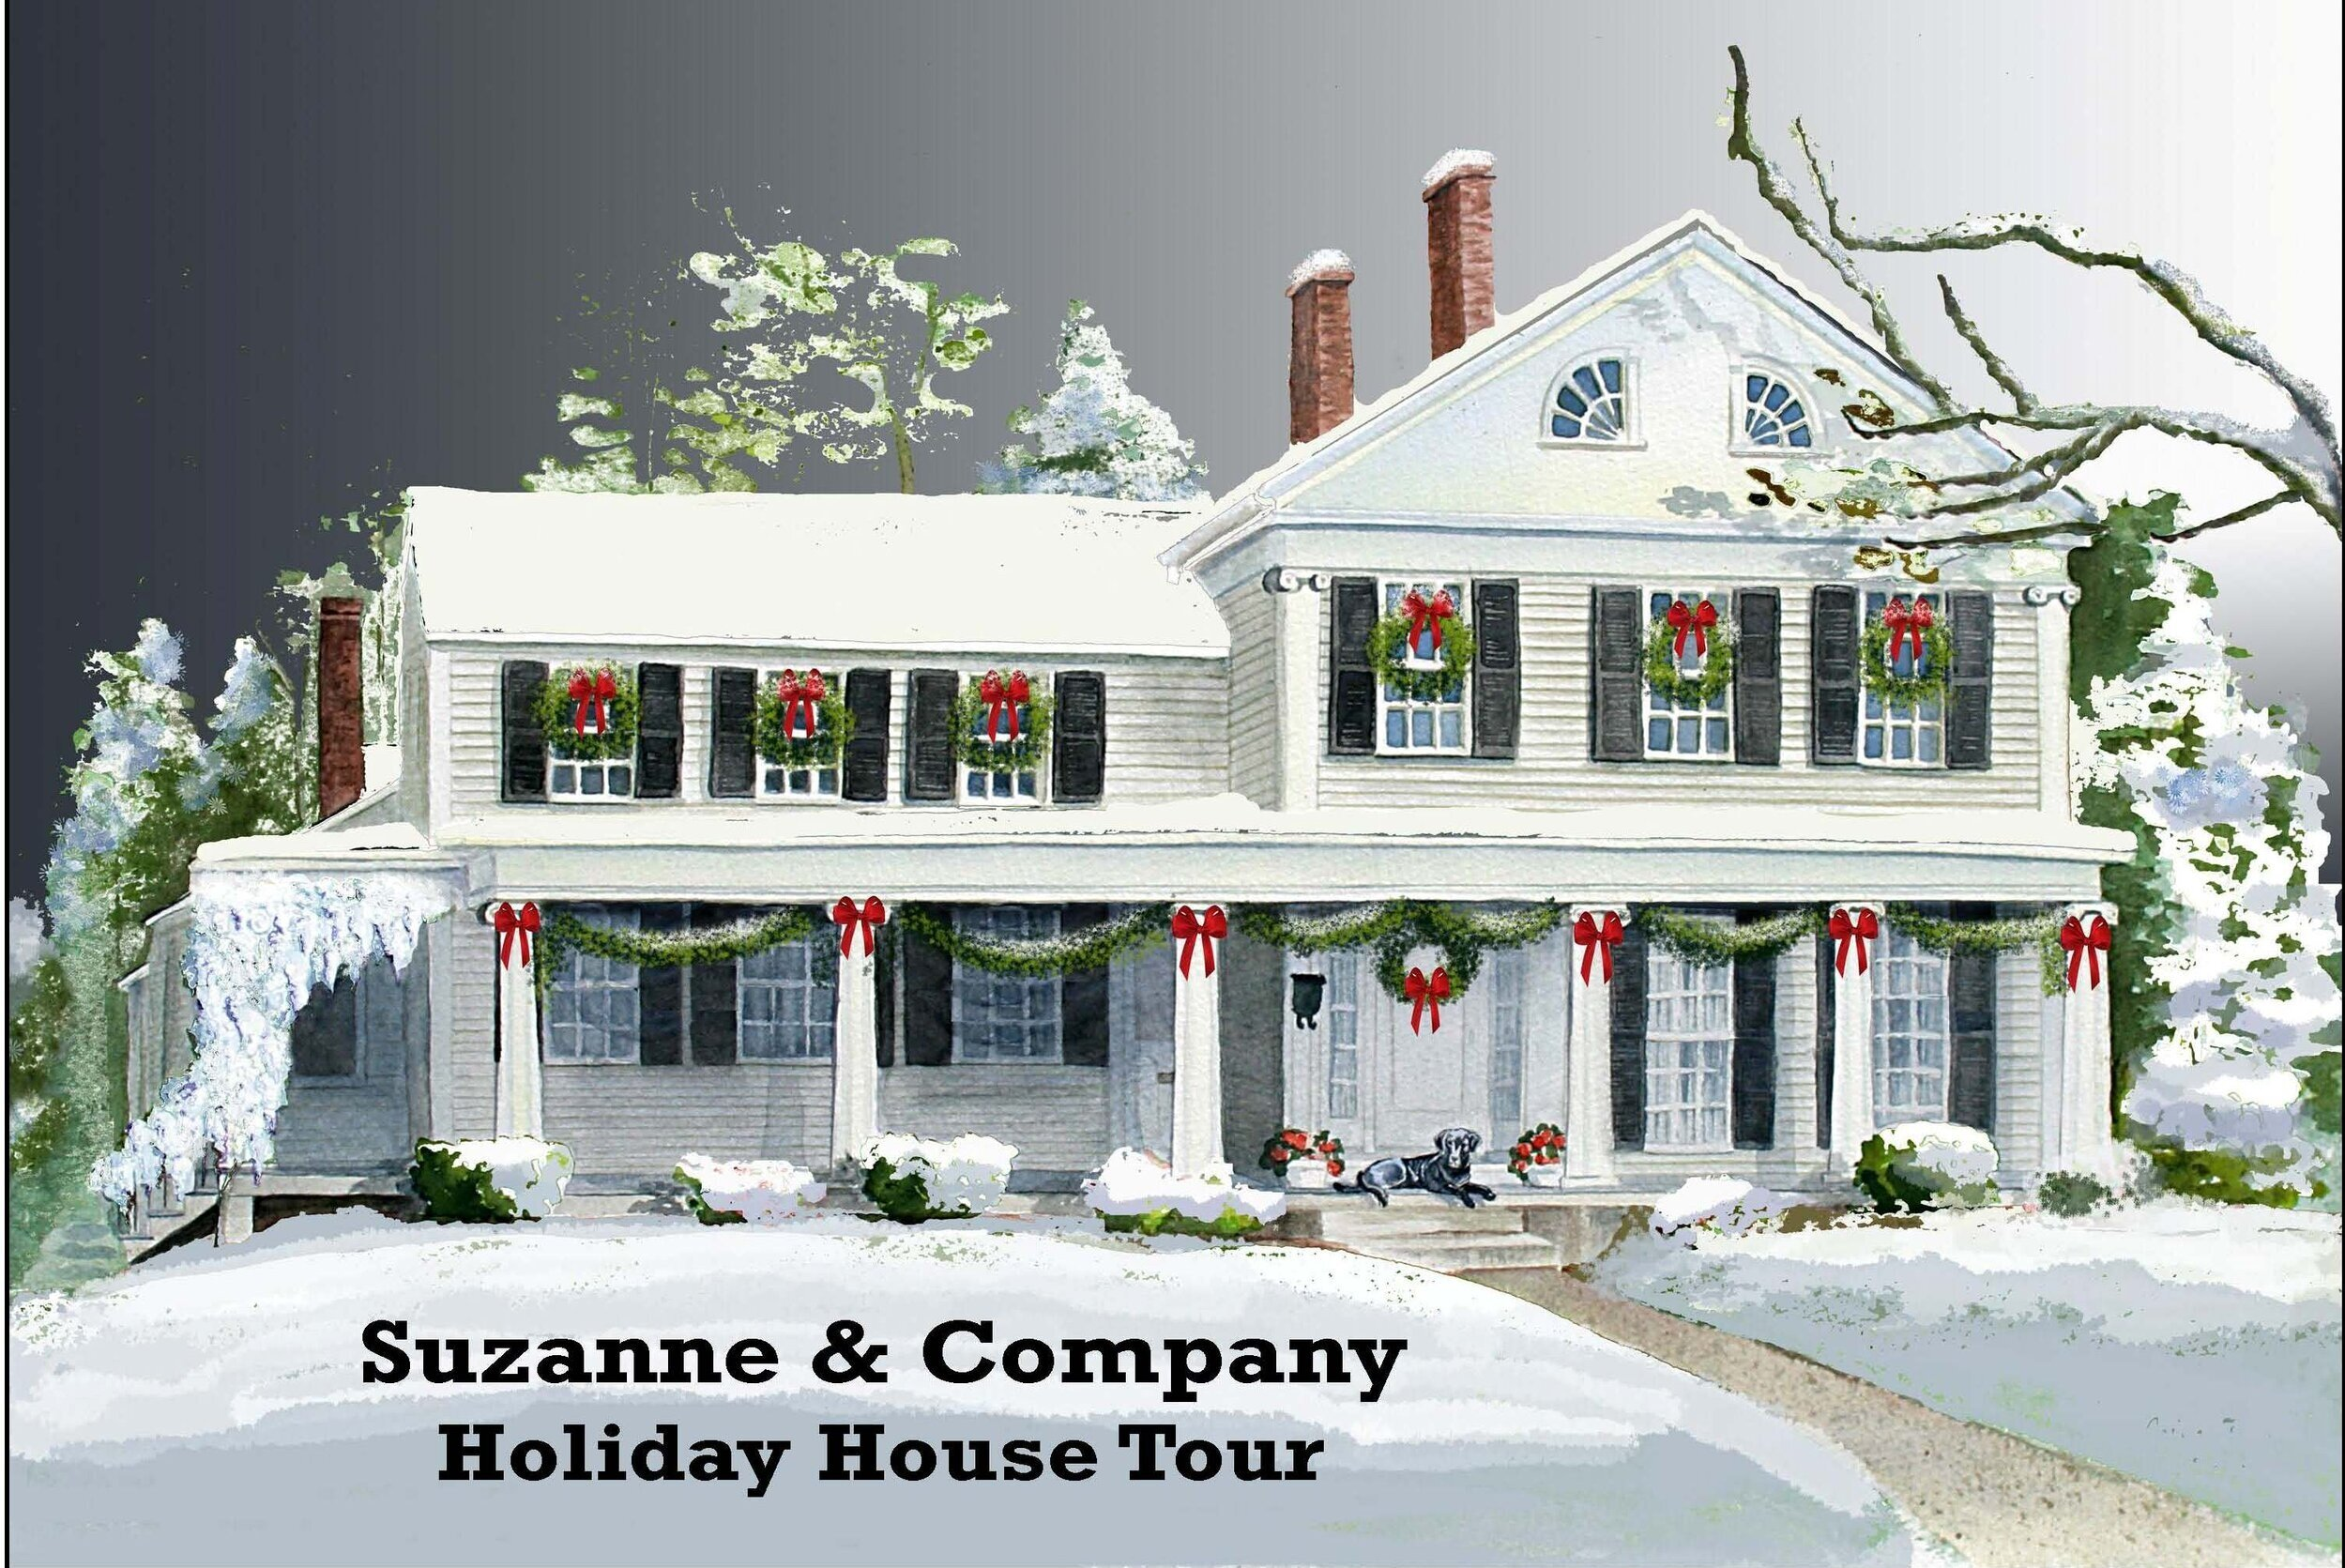 12/8  Suzanne & Co. Holiday House Tour